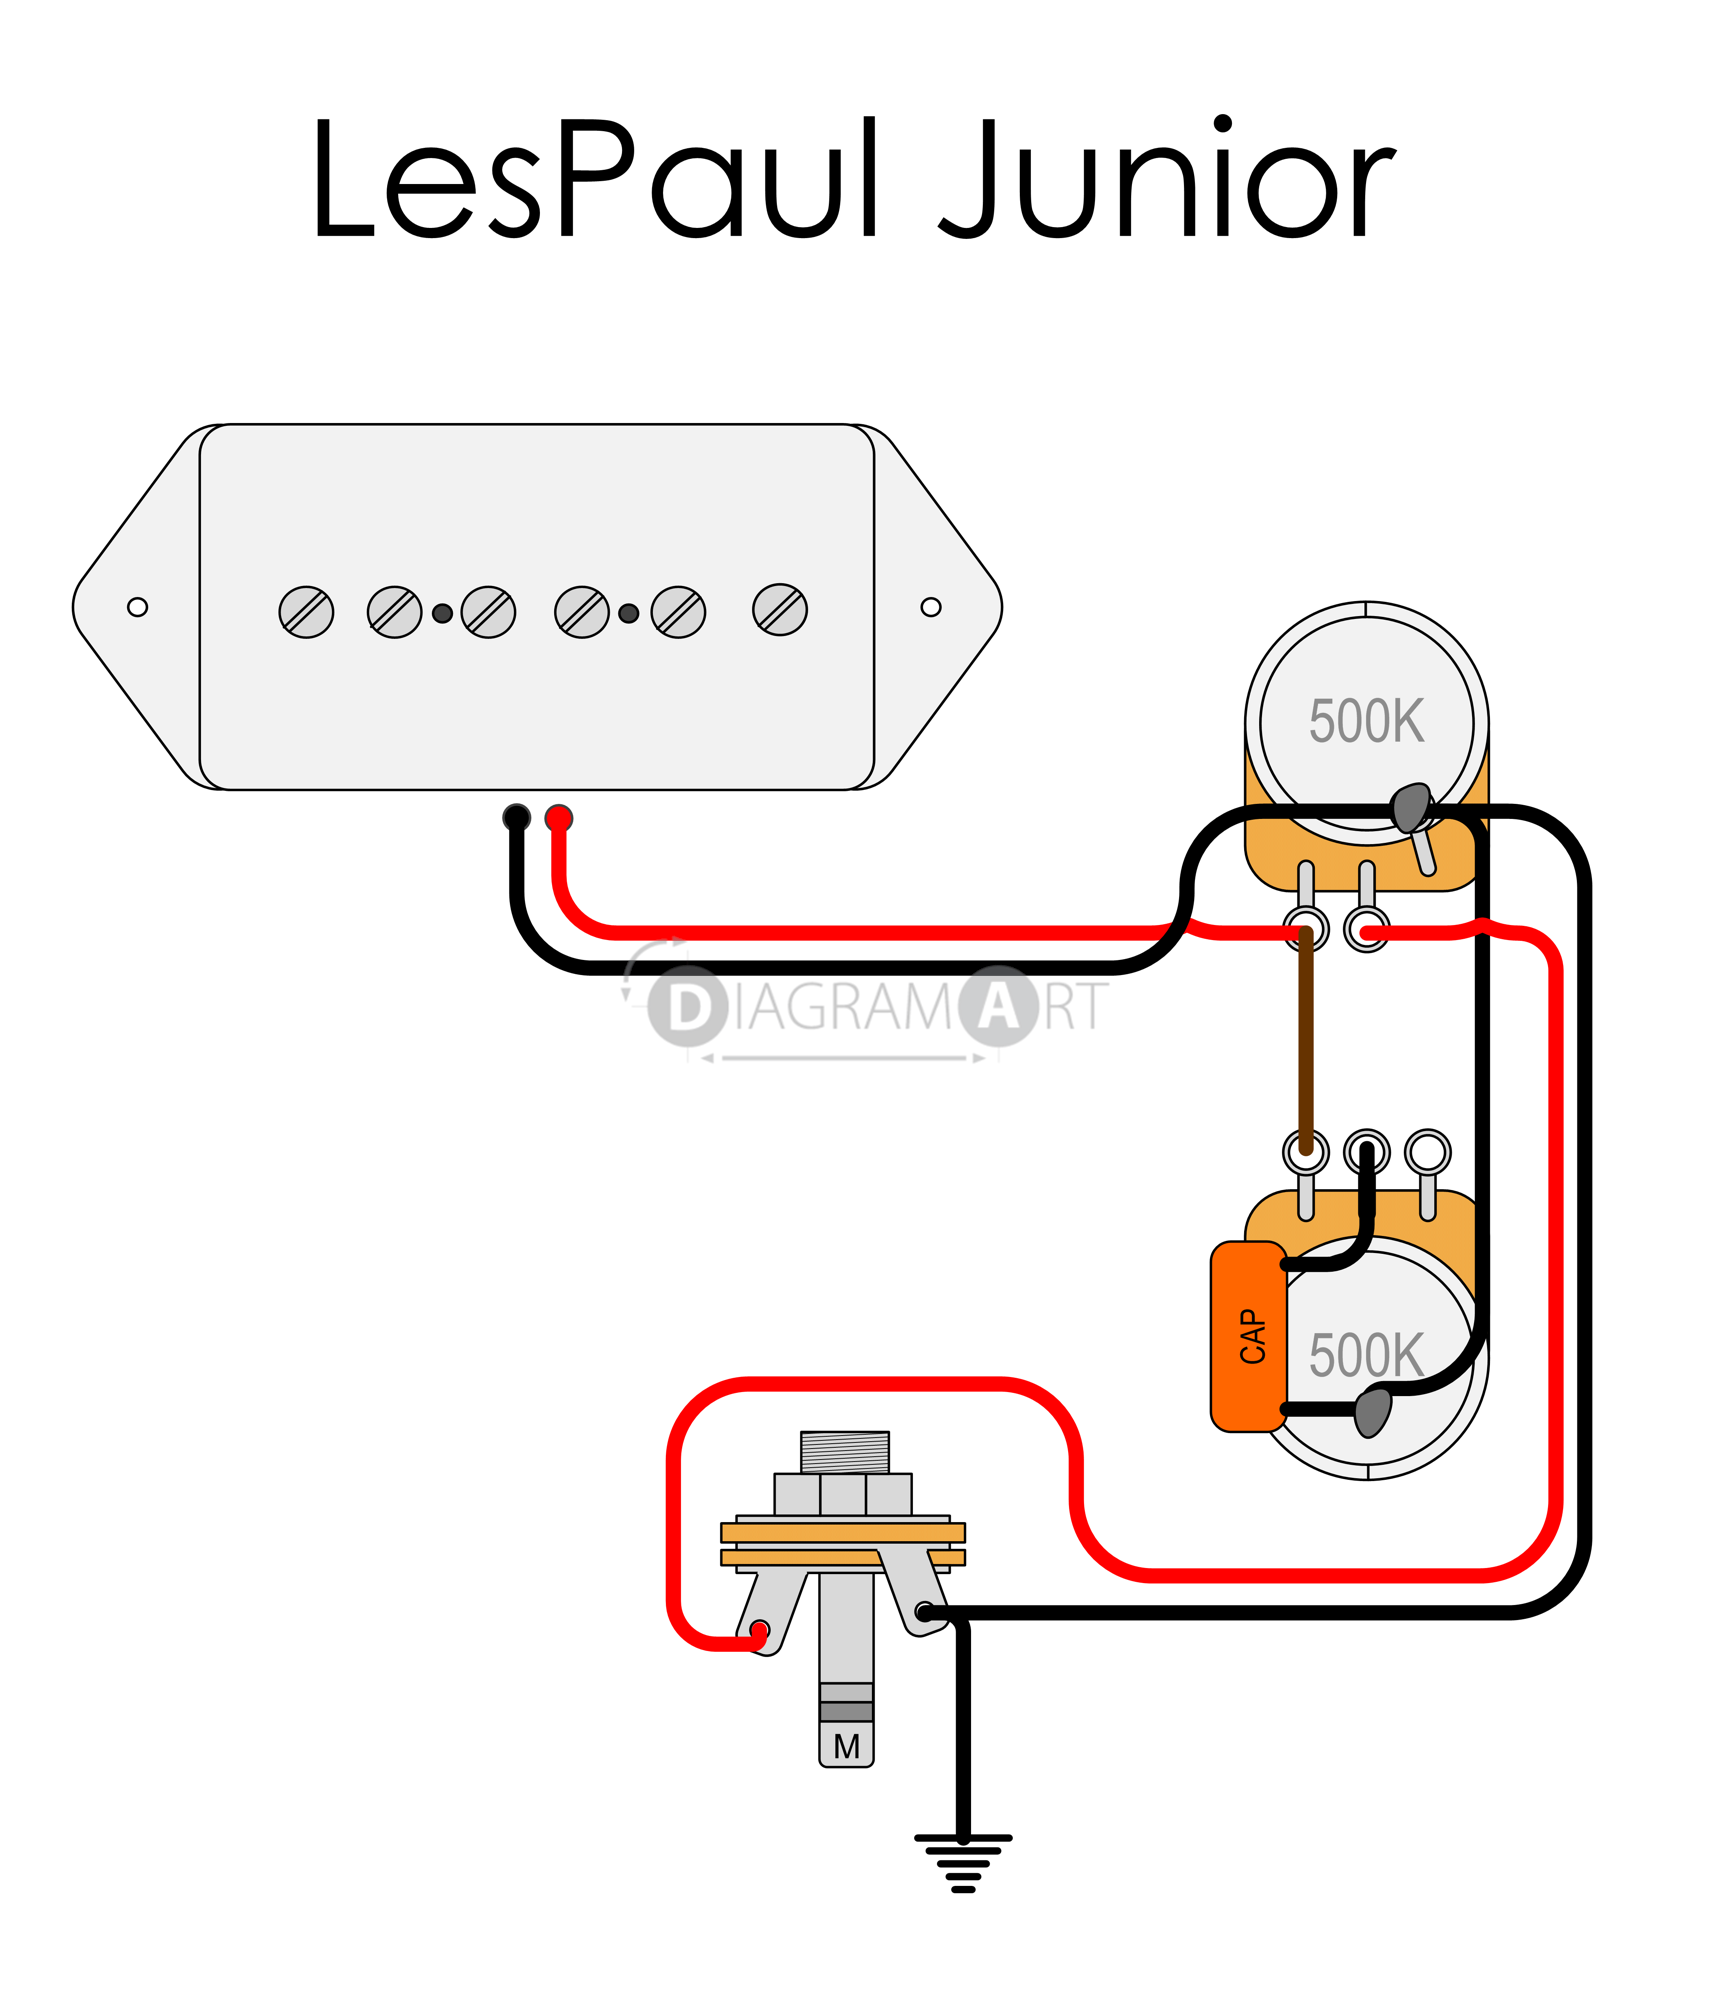 Fresh Wiring Diagram Guitar #diagrams #digramssample #diagramimages  #wiringdiagramsample #wiringdiagram Ch… | Epiphone les paul, Epiphone les  paul special, Les paul